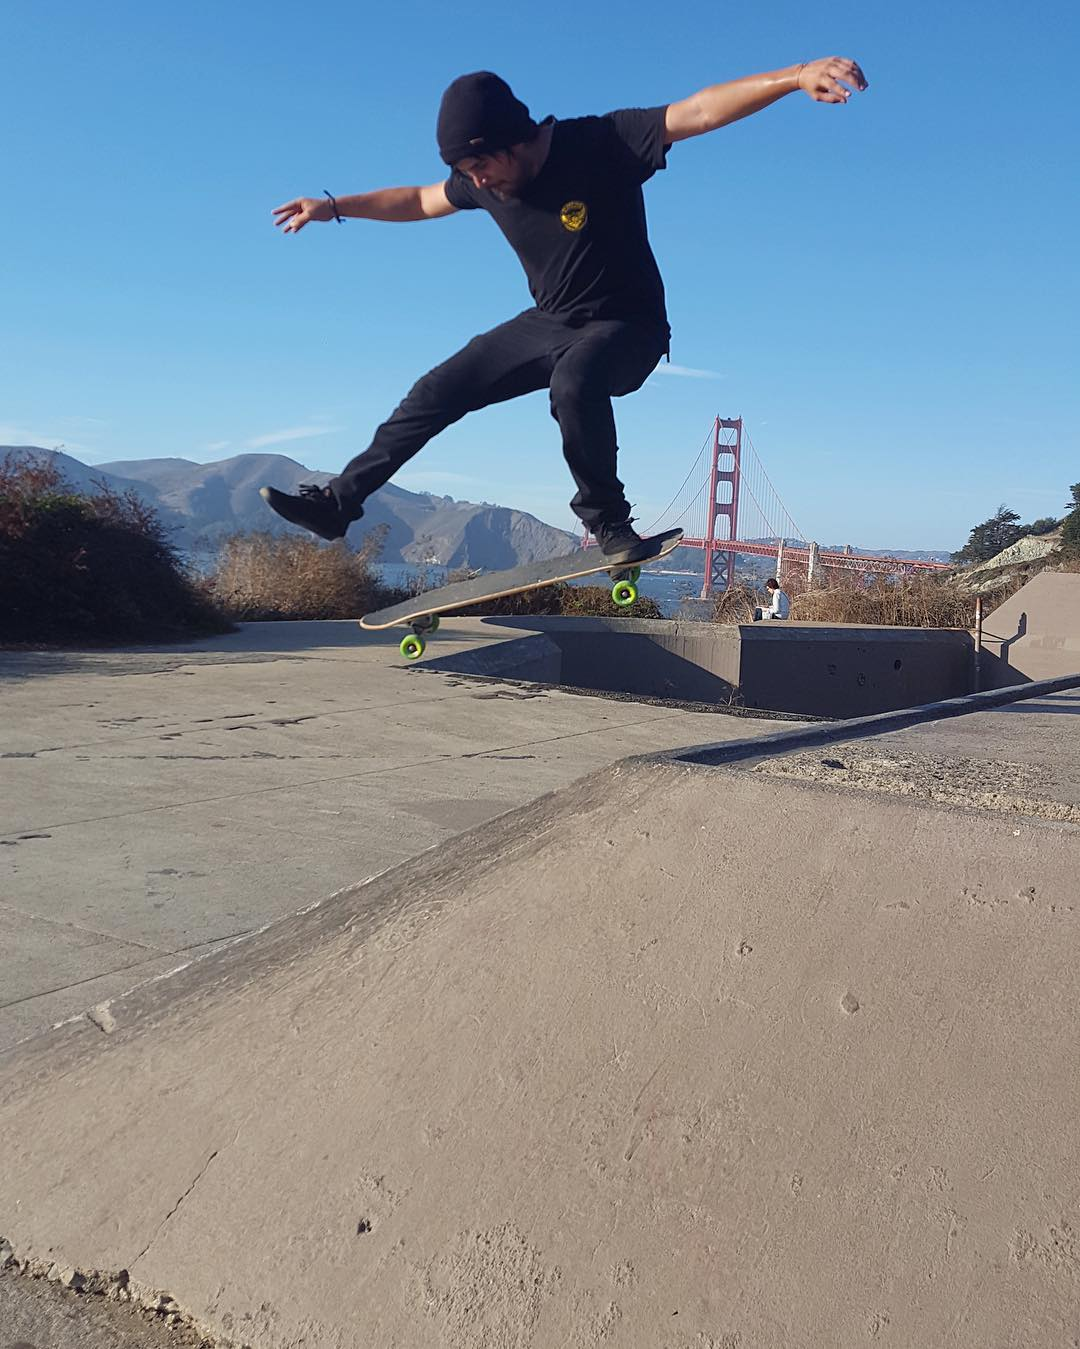 @deadbear13 recently took a trip up to the San Francisco and kicked out this Ollie-North with the Golden Gate Bridge on the horizon.